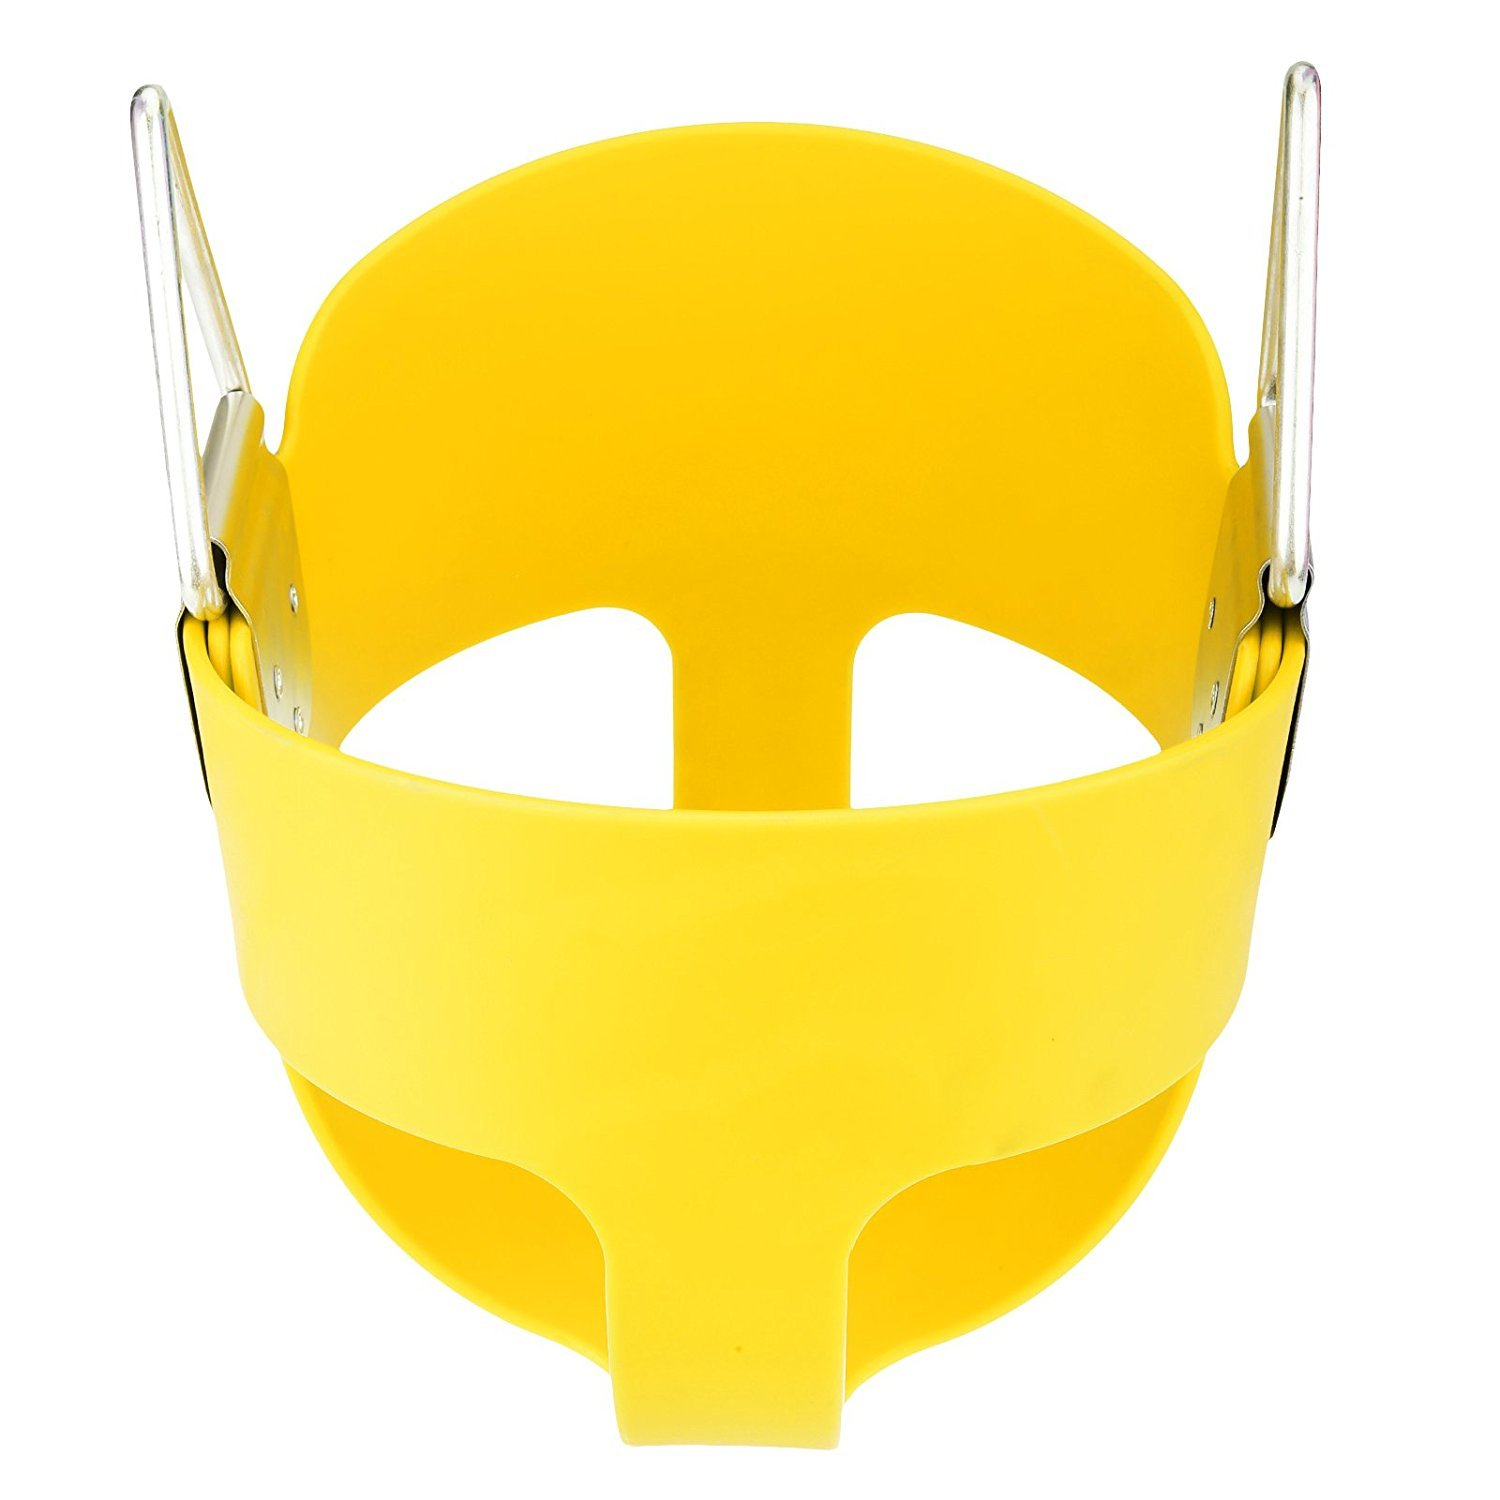 E EVERKING EverKing Heavy Duty High Back Full Bucket Toddler Swing Seat with Coated Swing Chains and Snap Hooks- Swing Set Accessories (Yellow) by E EVERKING